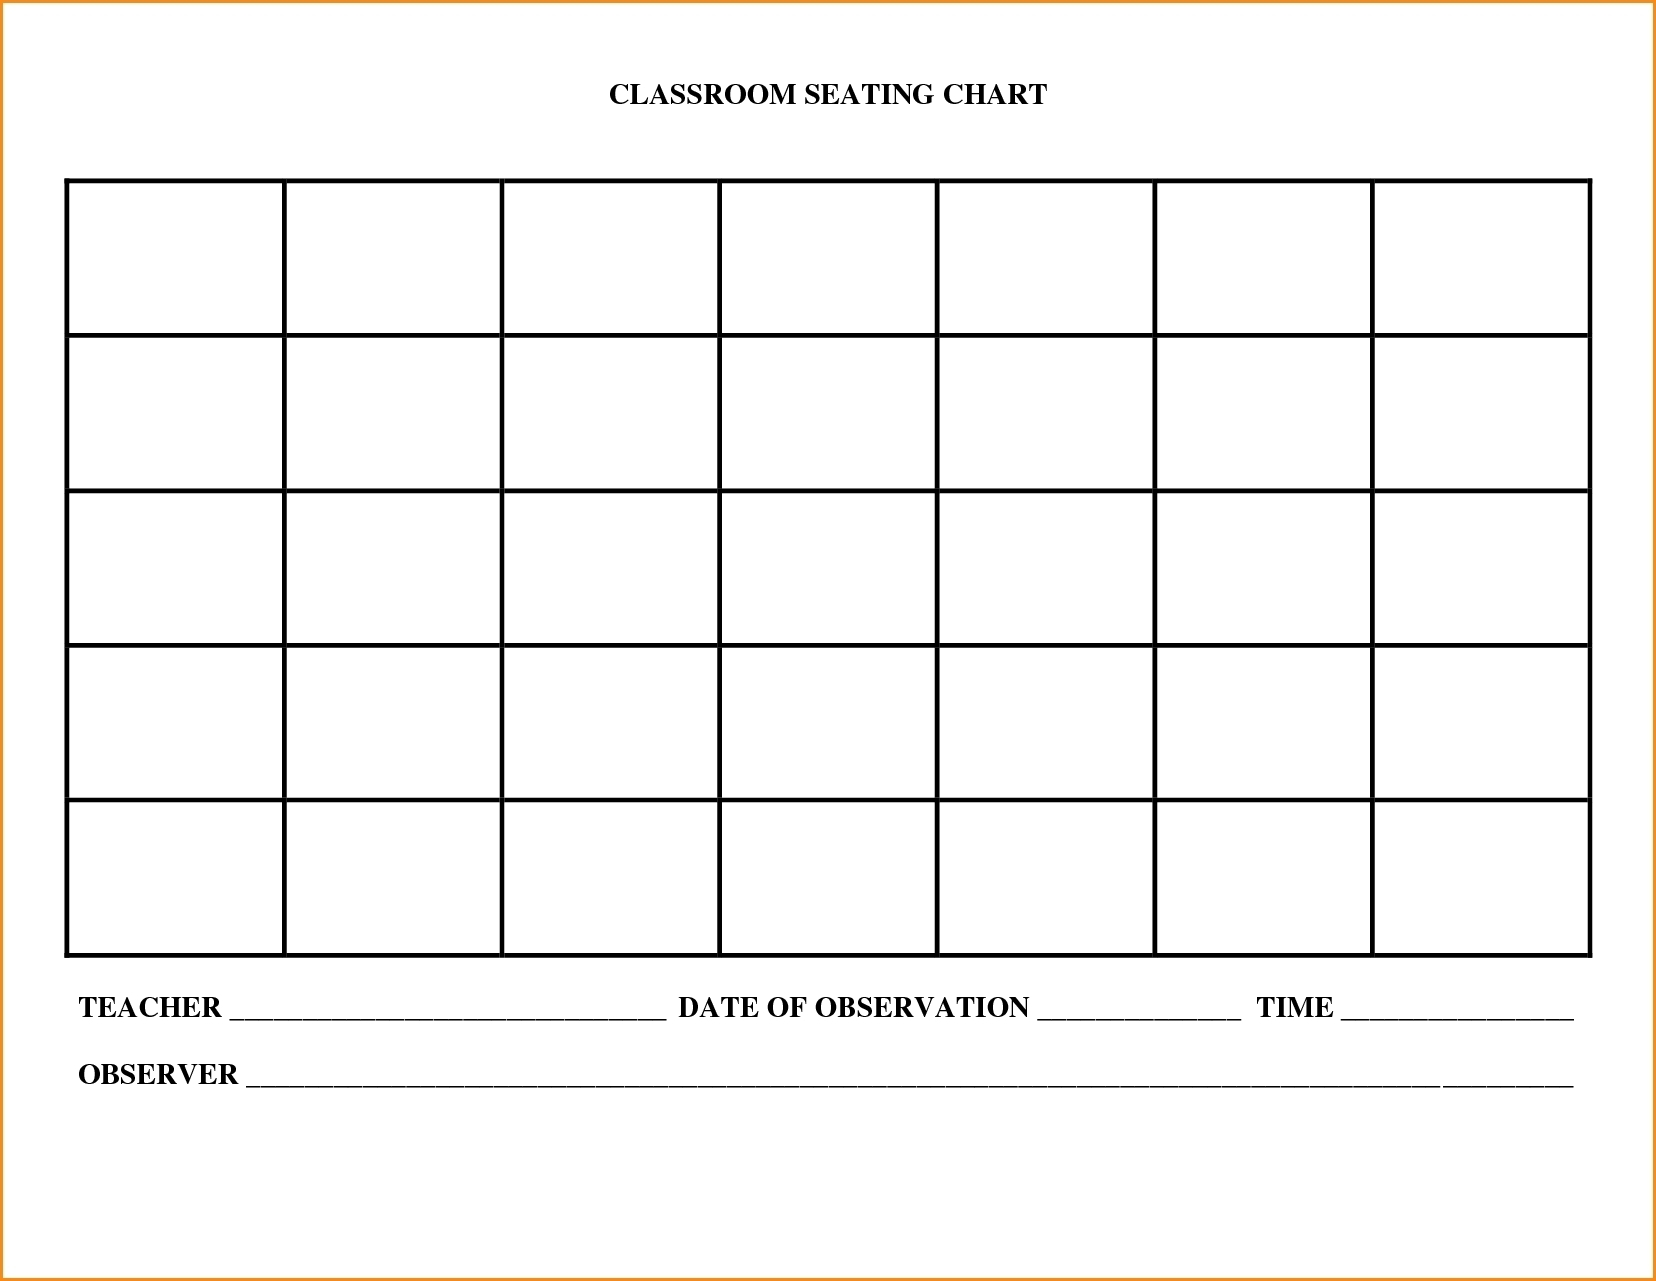 Blank Calendar Chart For Classrooms | Template Calendar Printable throughout Blank Calendar Chart For Classrooms